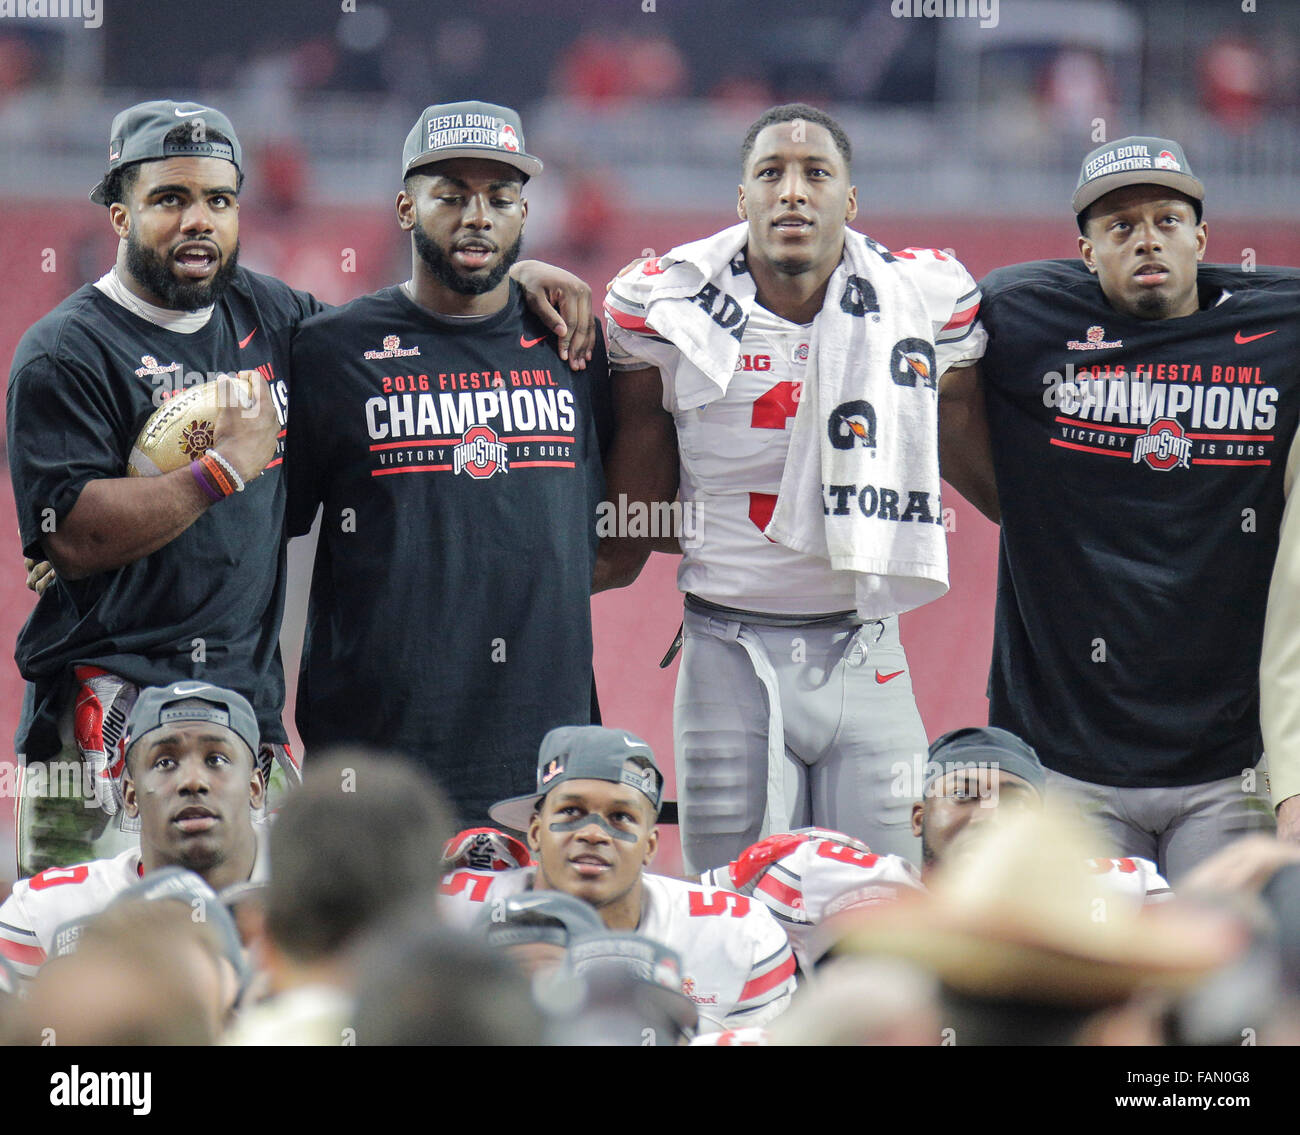 Glendale, AZ USA. 01st Jan, 2016. Ohio State ( L-R) Ezekiel Elliott, J.T. Barrett, Michael Thomas and Eli Apple - Stock Image